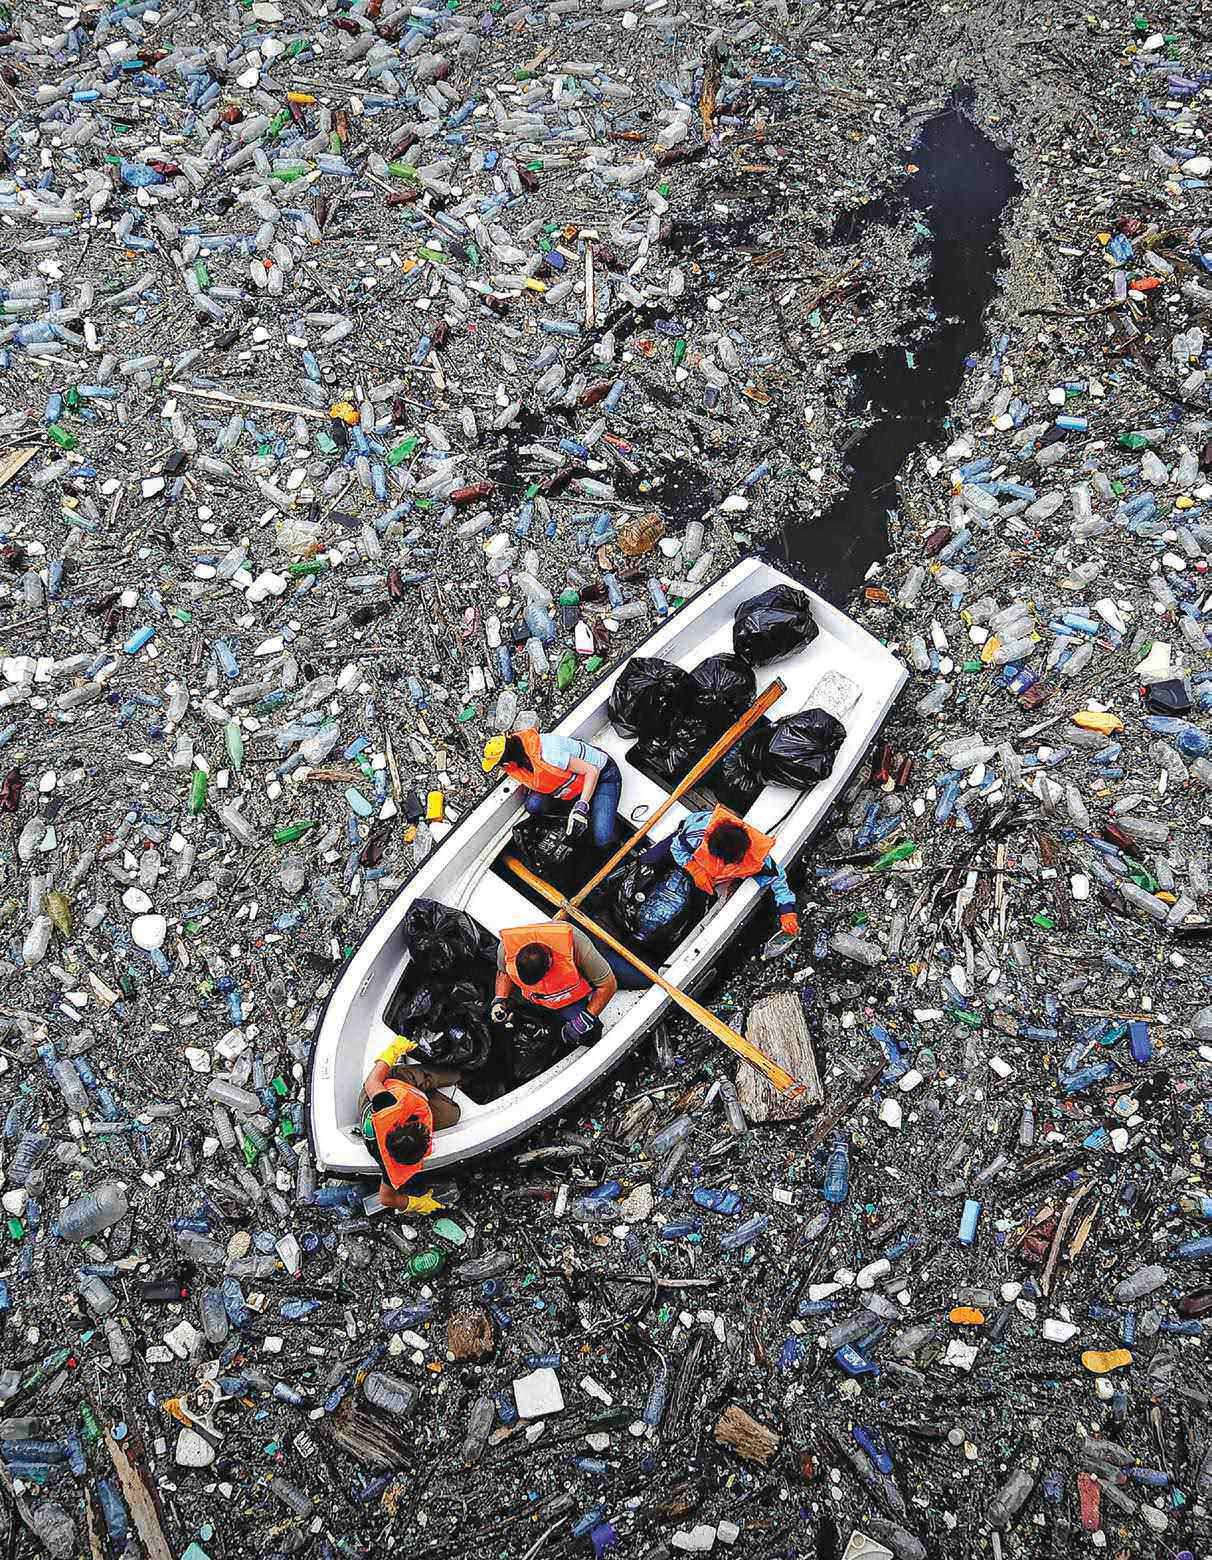 Plastic Ocean Silicon Valley Pollution